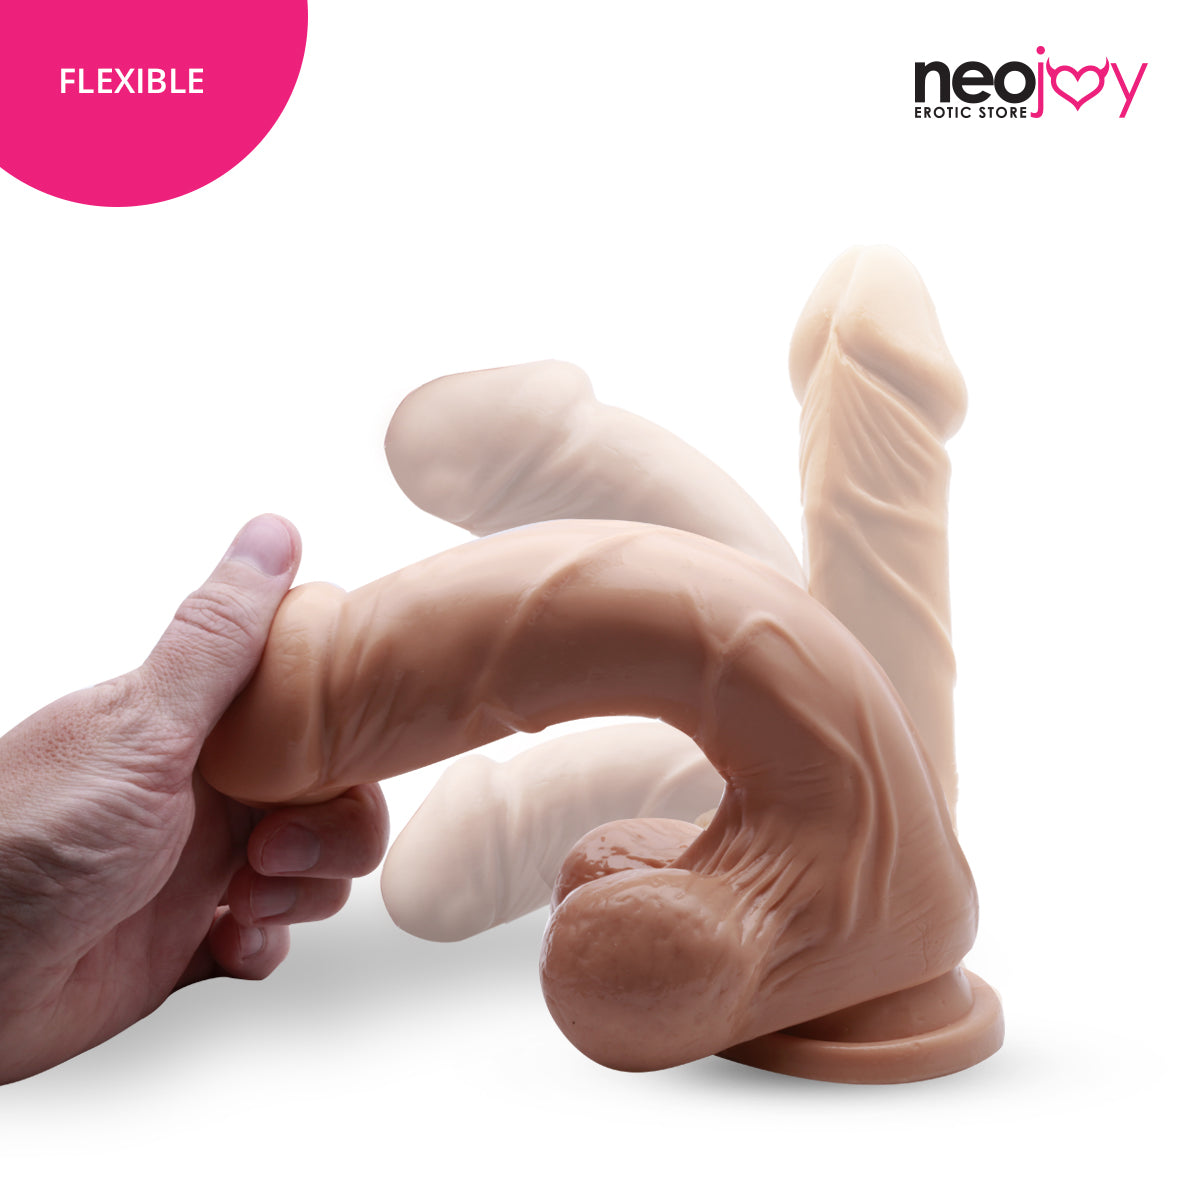 Neojoy - Super Whopper Dildo With Strap-On Dong Pegging - Flesh - 23cm - 9.1 inch